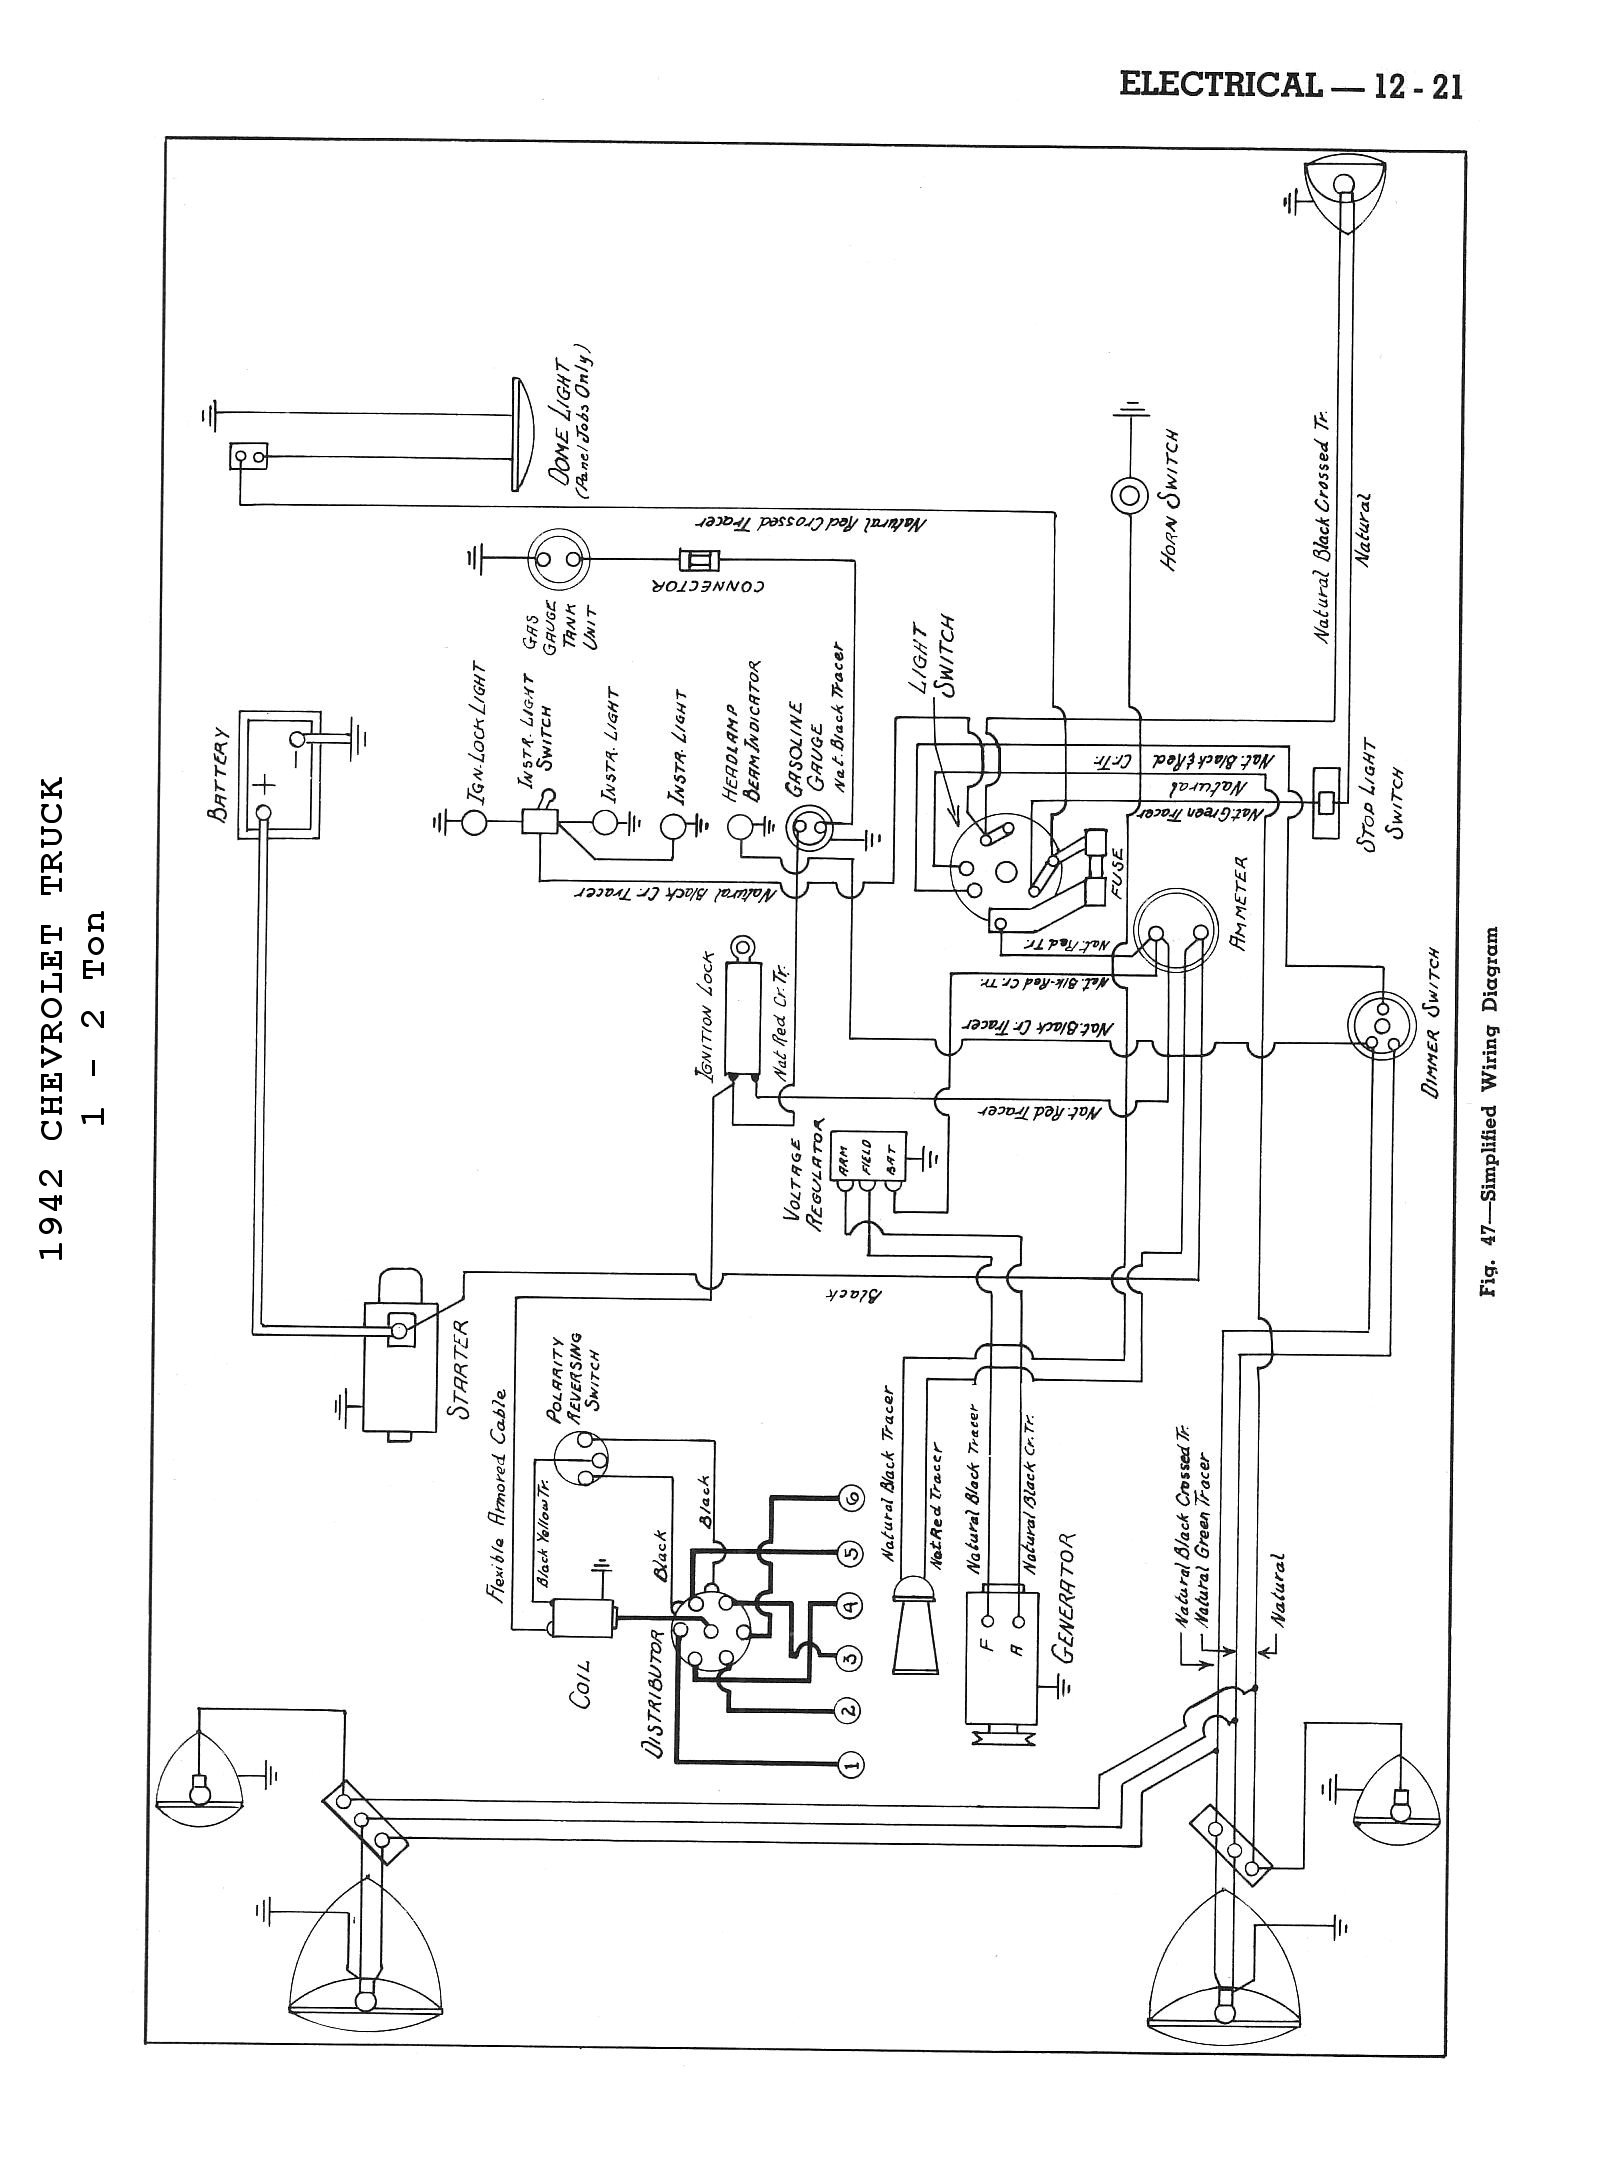 Cm wiring diagram cm hoist wiring diagram wiring diagrams j 42cm4x2t1221 chevy wiring diagrams cm wiring diagrams at j squared sciox Image collections